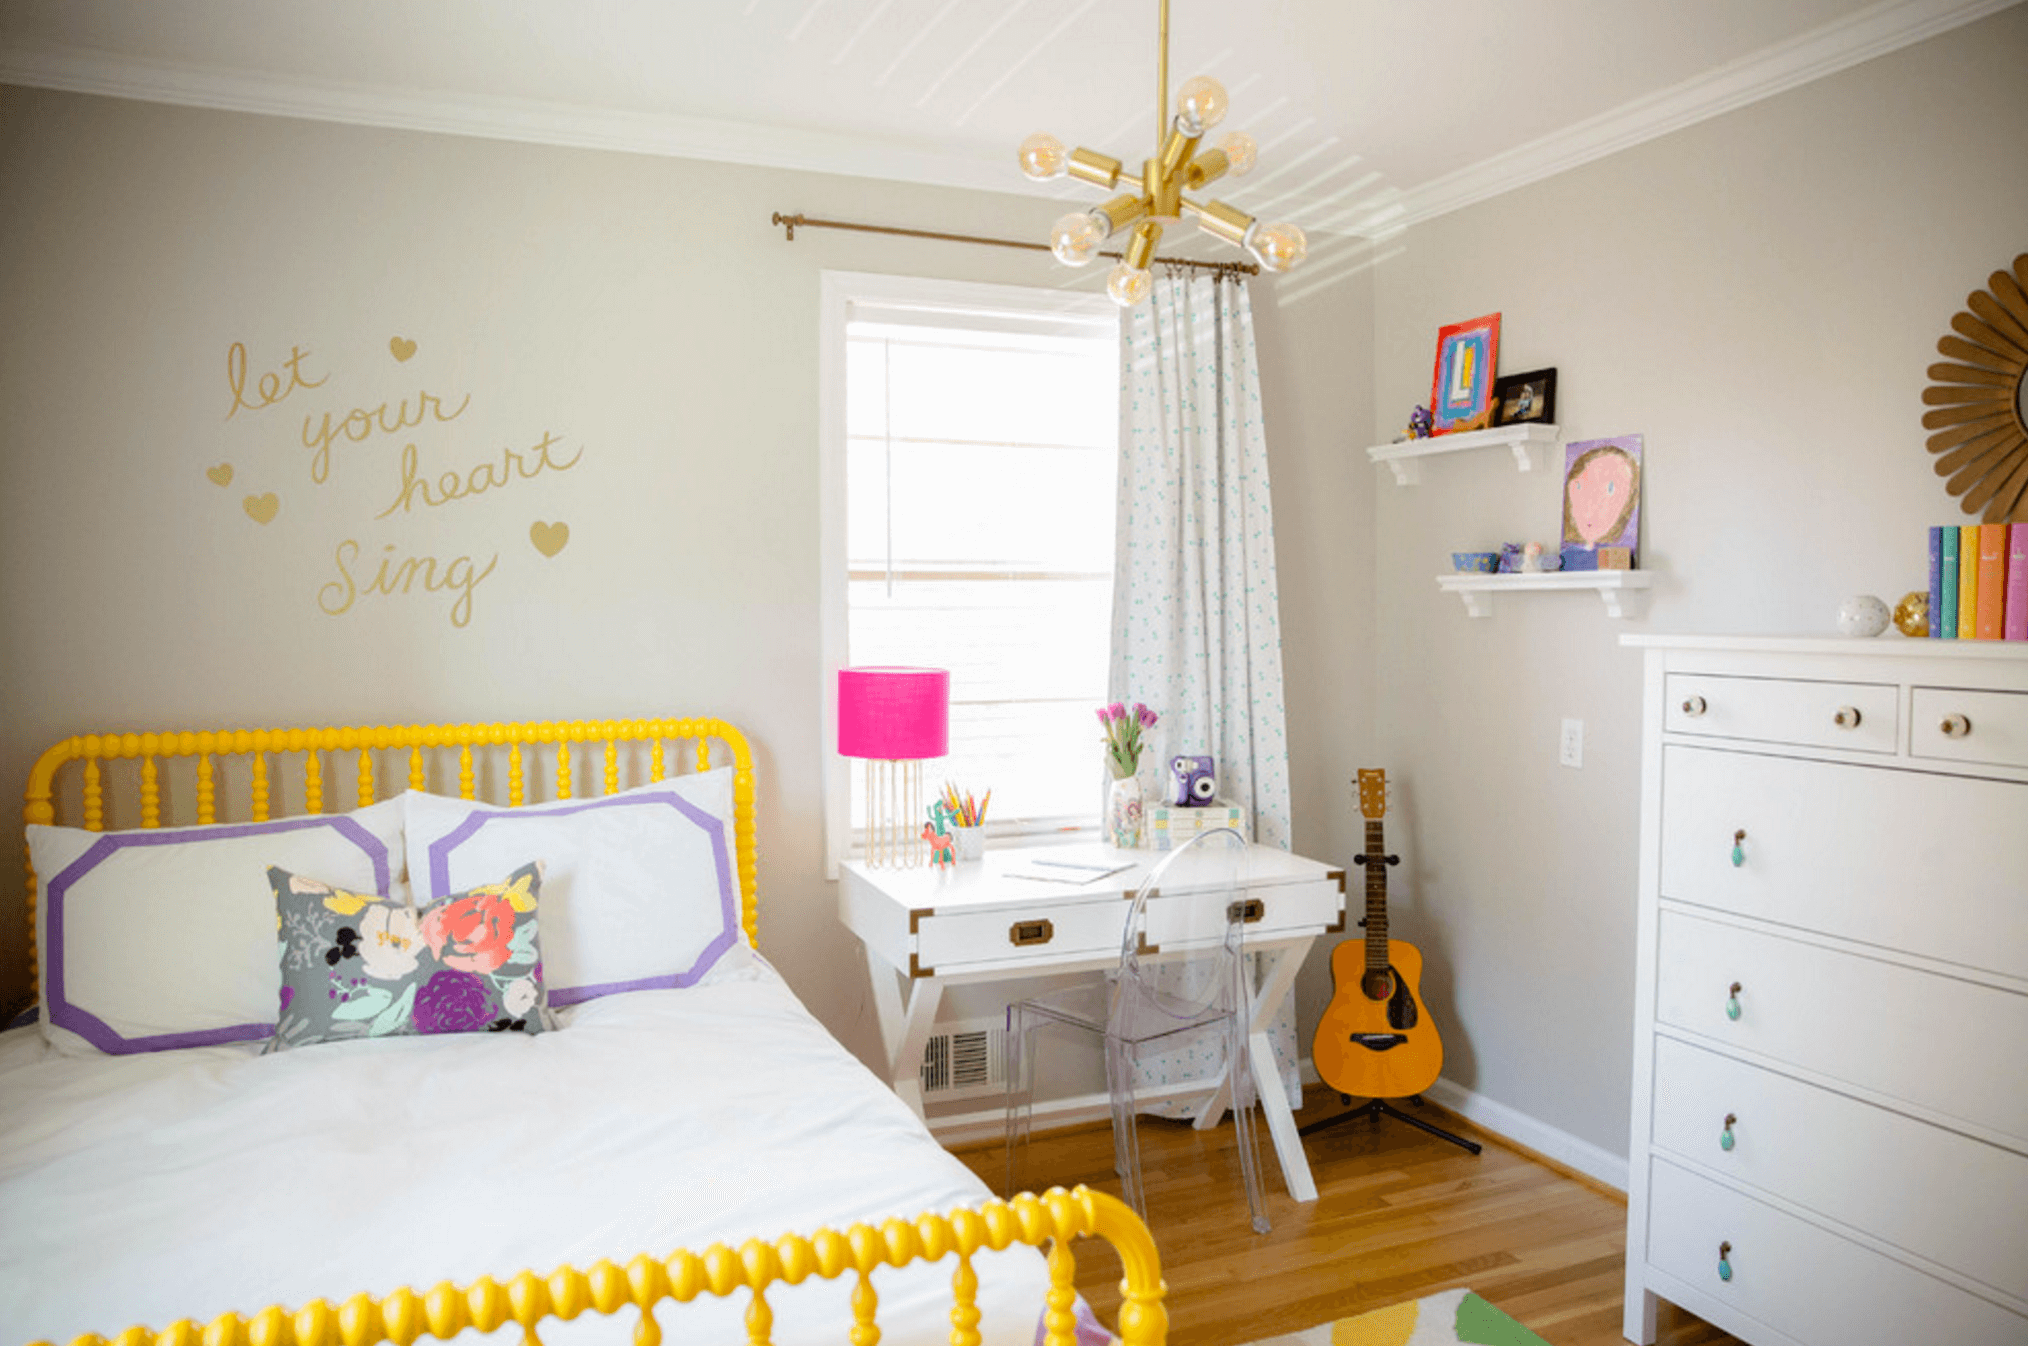 Childrens Bedroom Colour Schemes 28 Ideas For Adding Color To A Kids Room Freshome